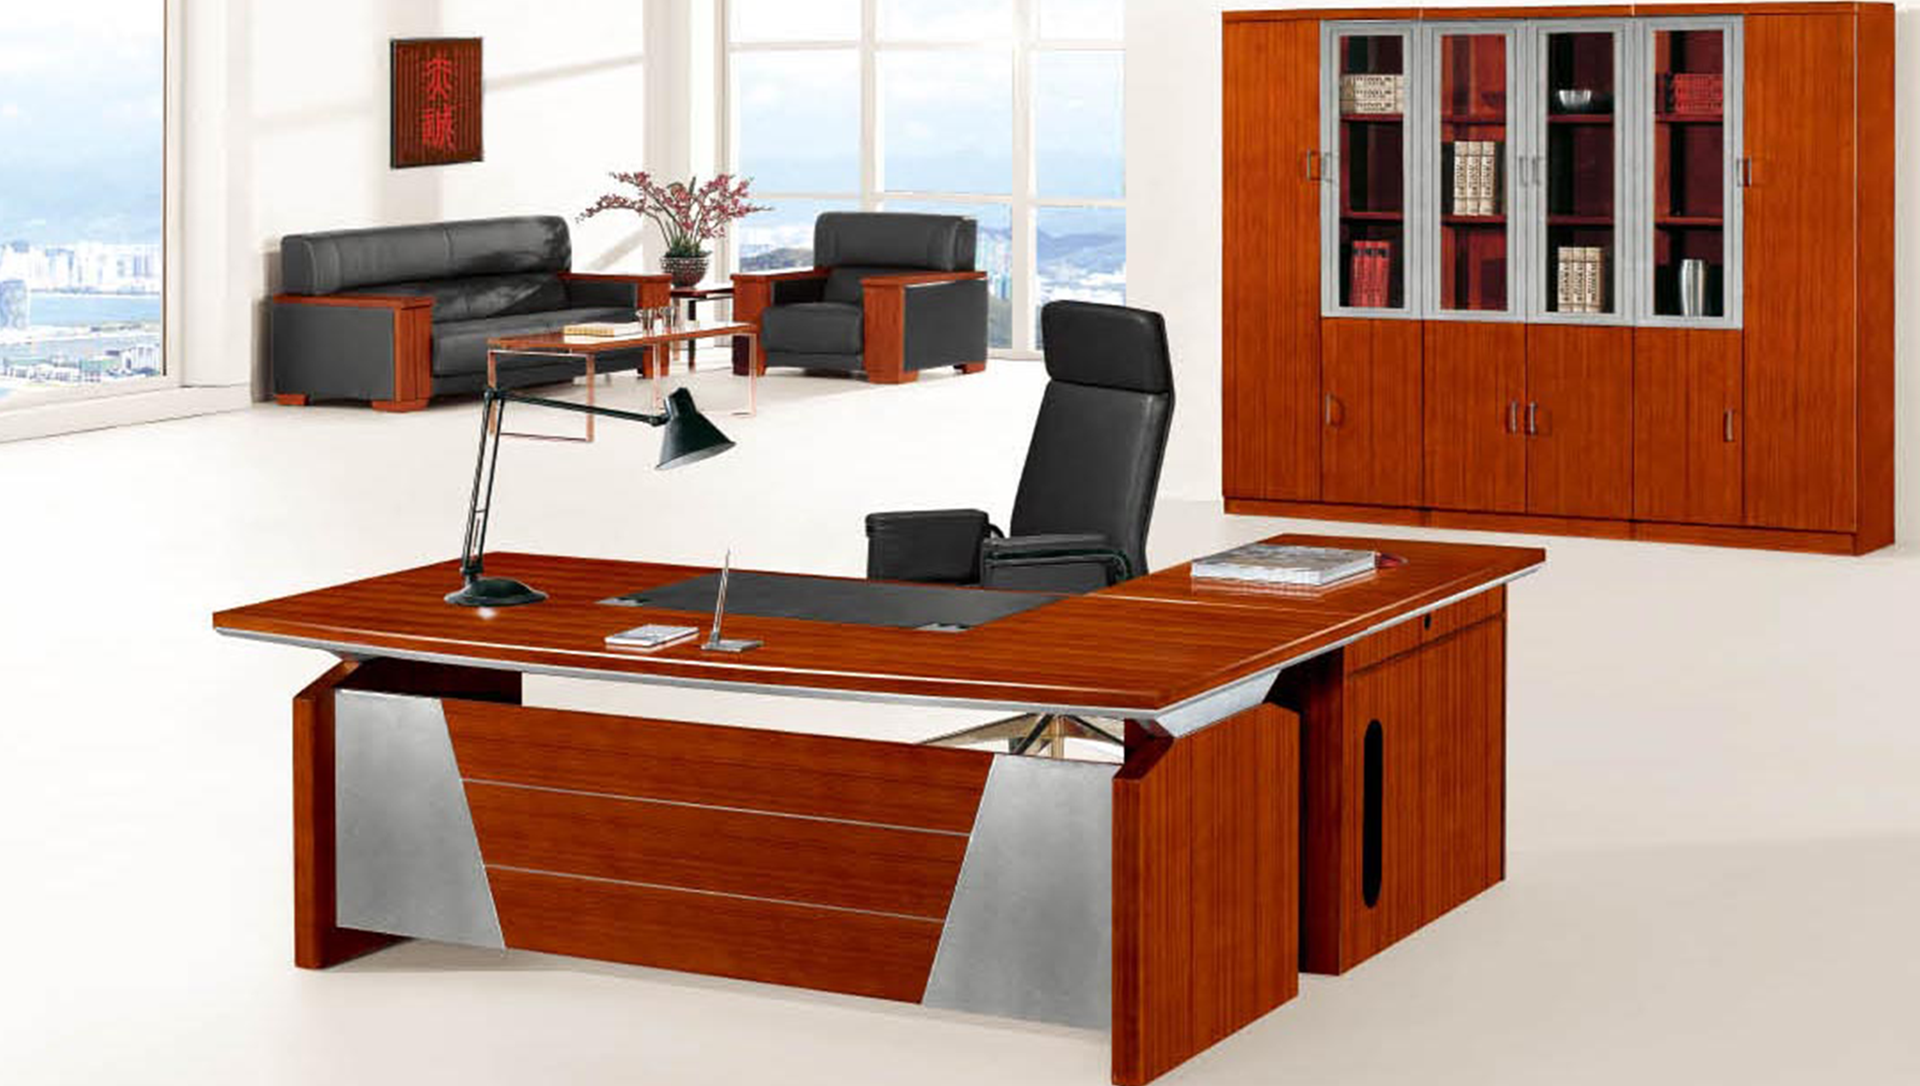 Impress Office Furniture | LED Lighting Perth | Office Furniture Perth : led lighting perth - www.canuckmediamonitor.org